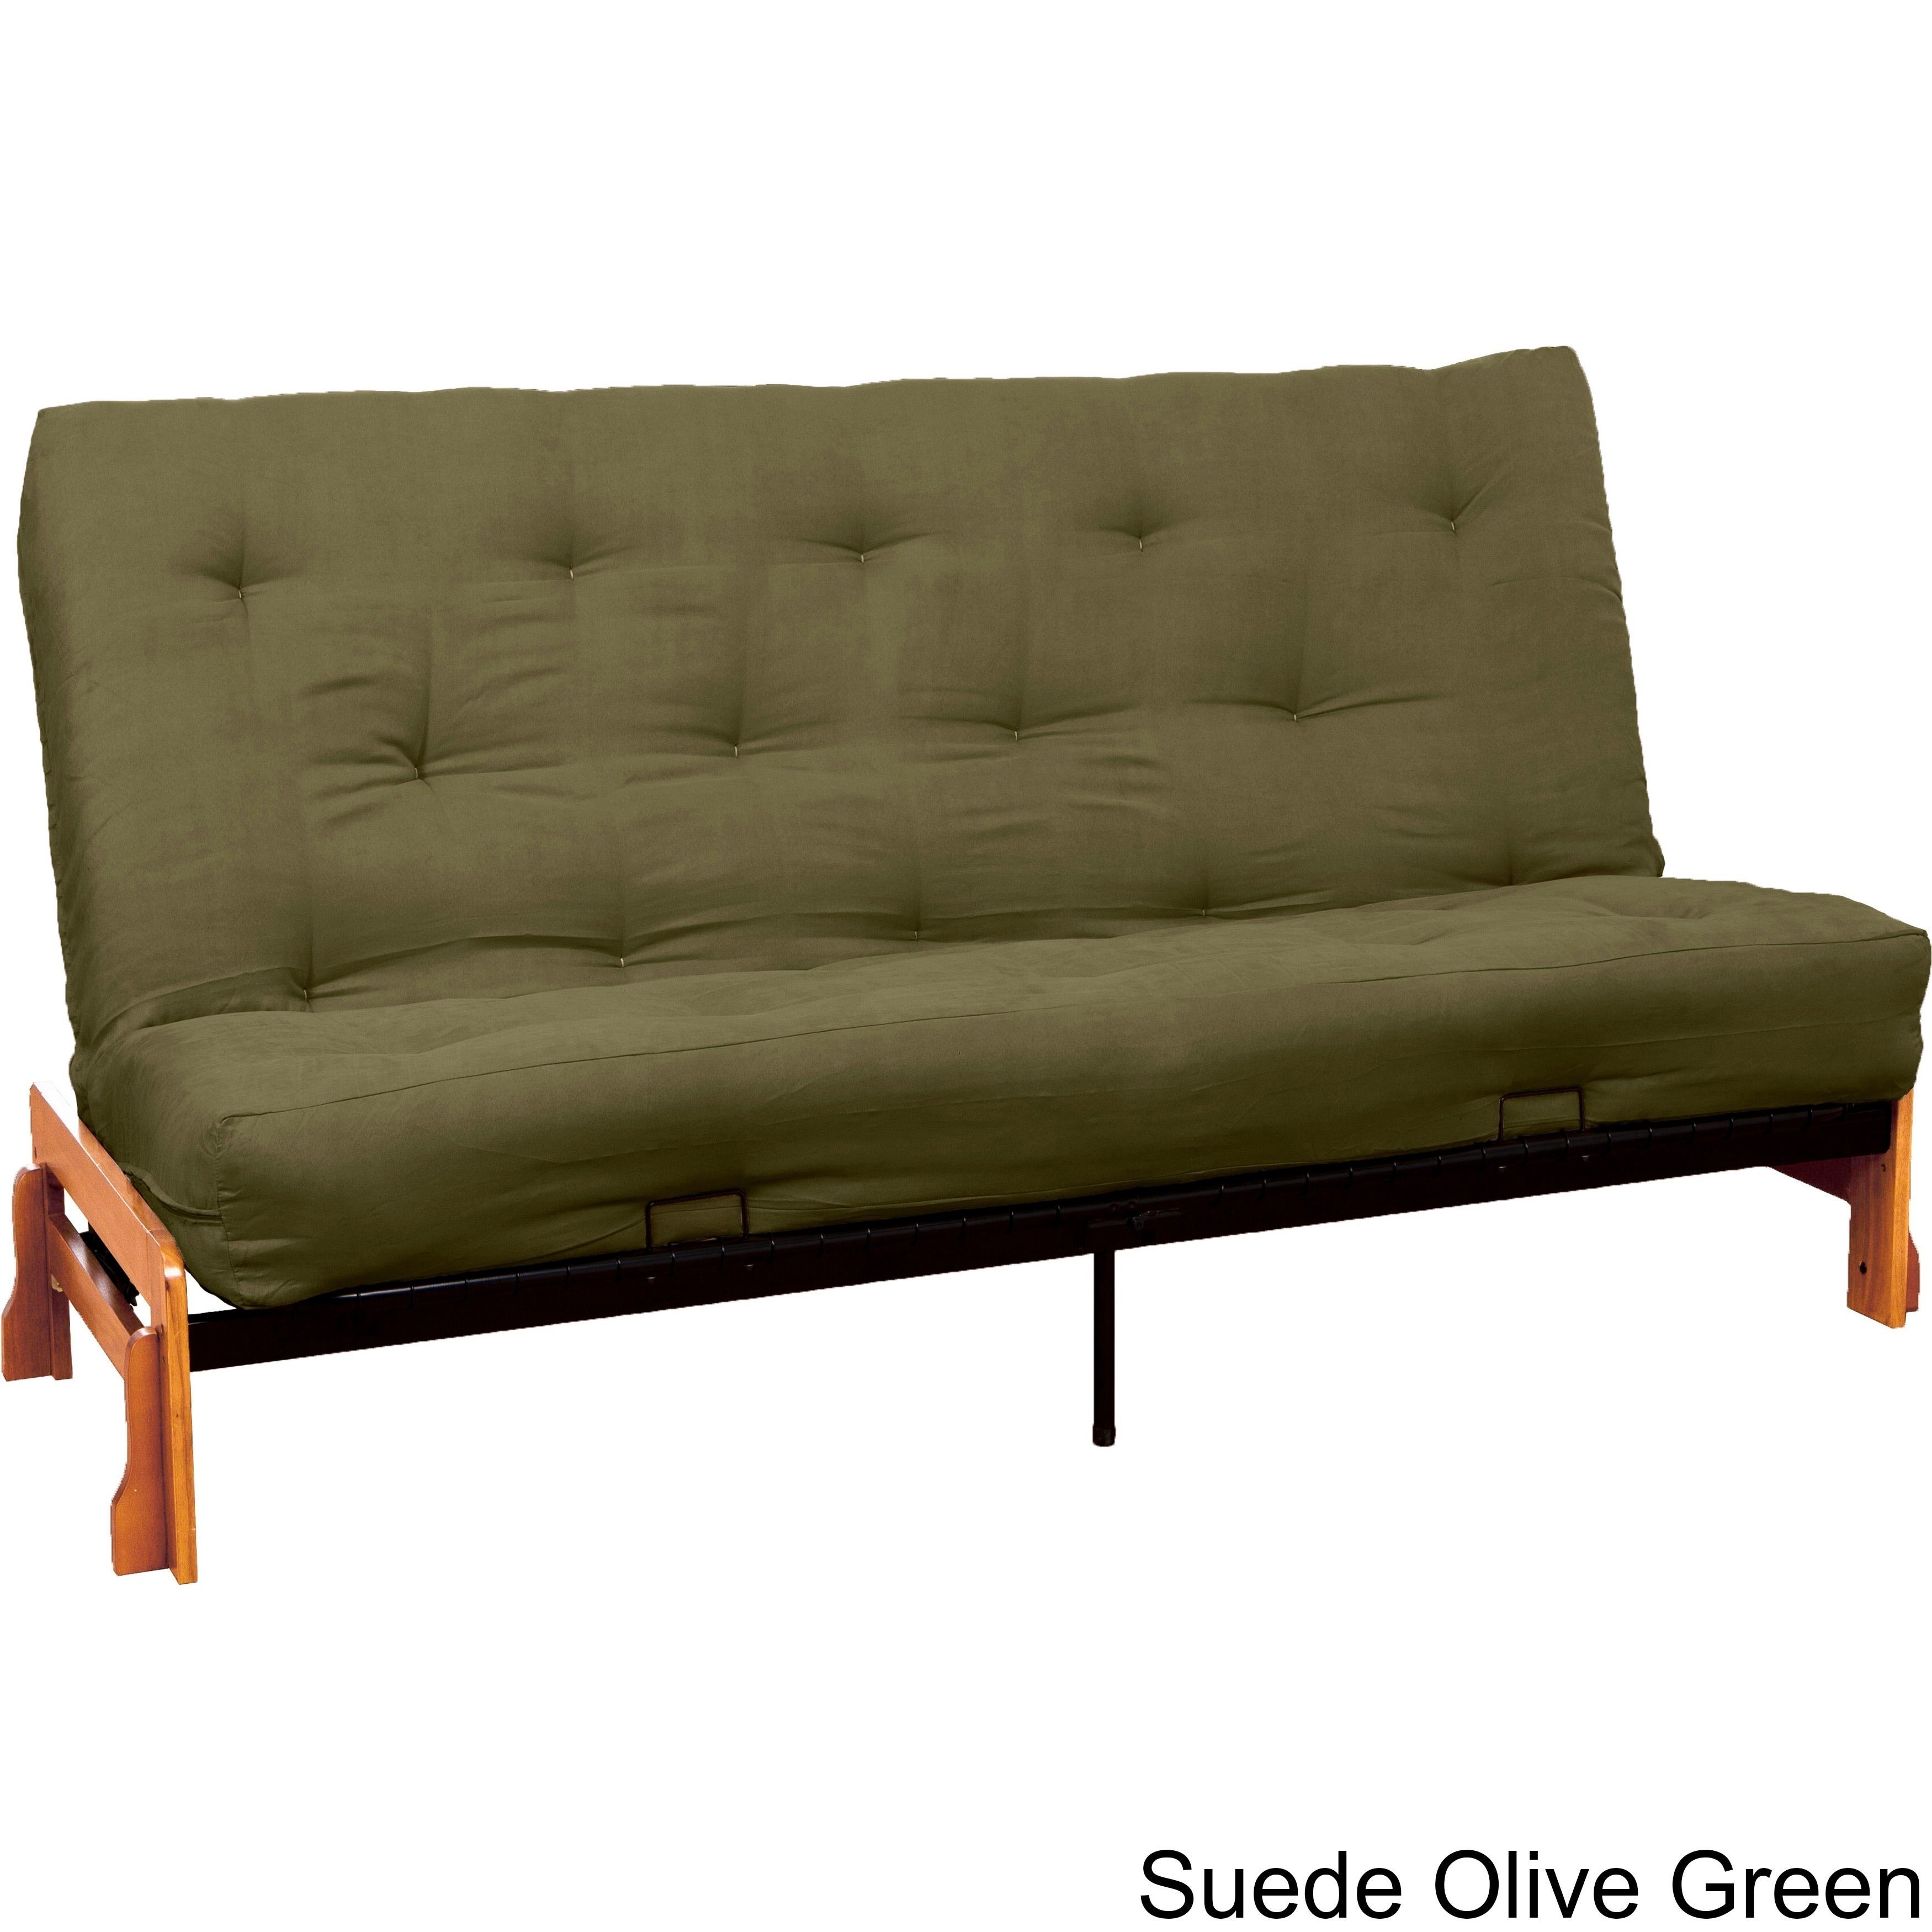 Green Futons Online At Com Our Best Living Room Furniture Deals